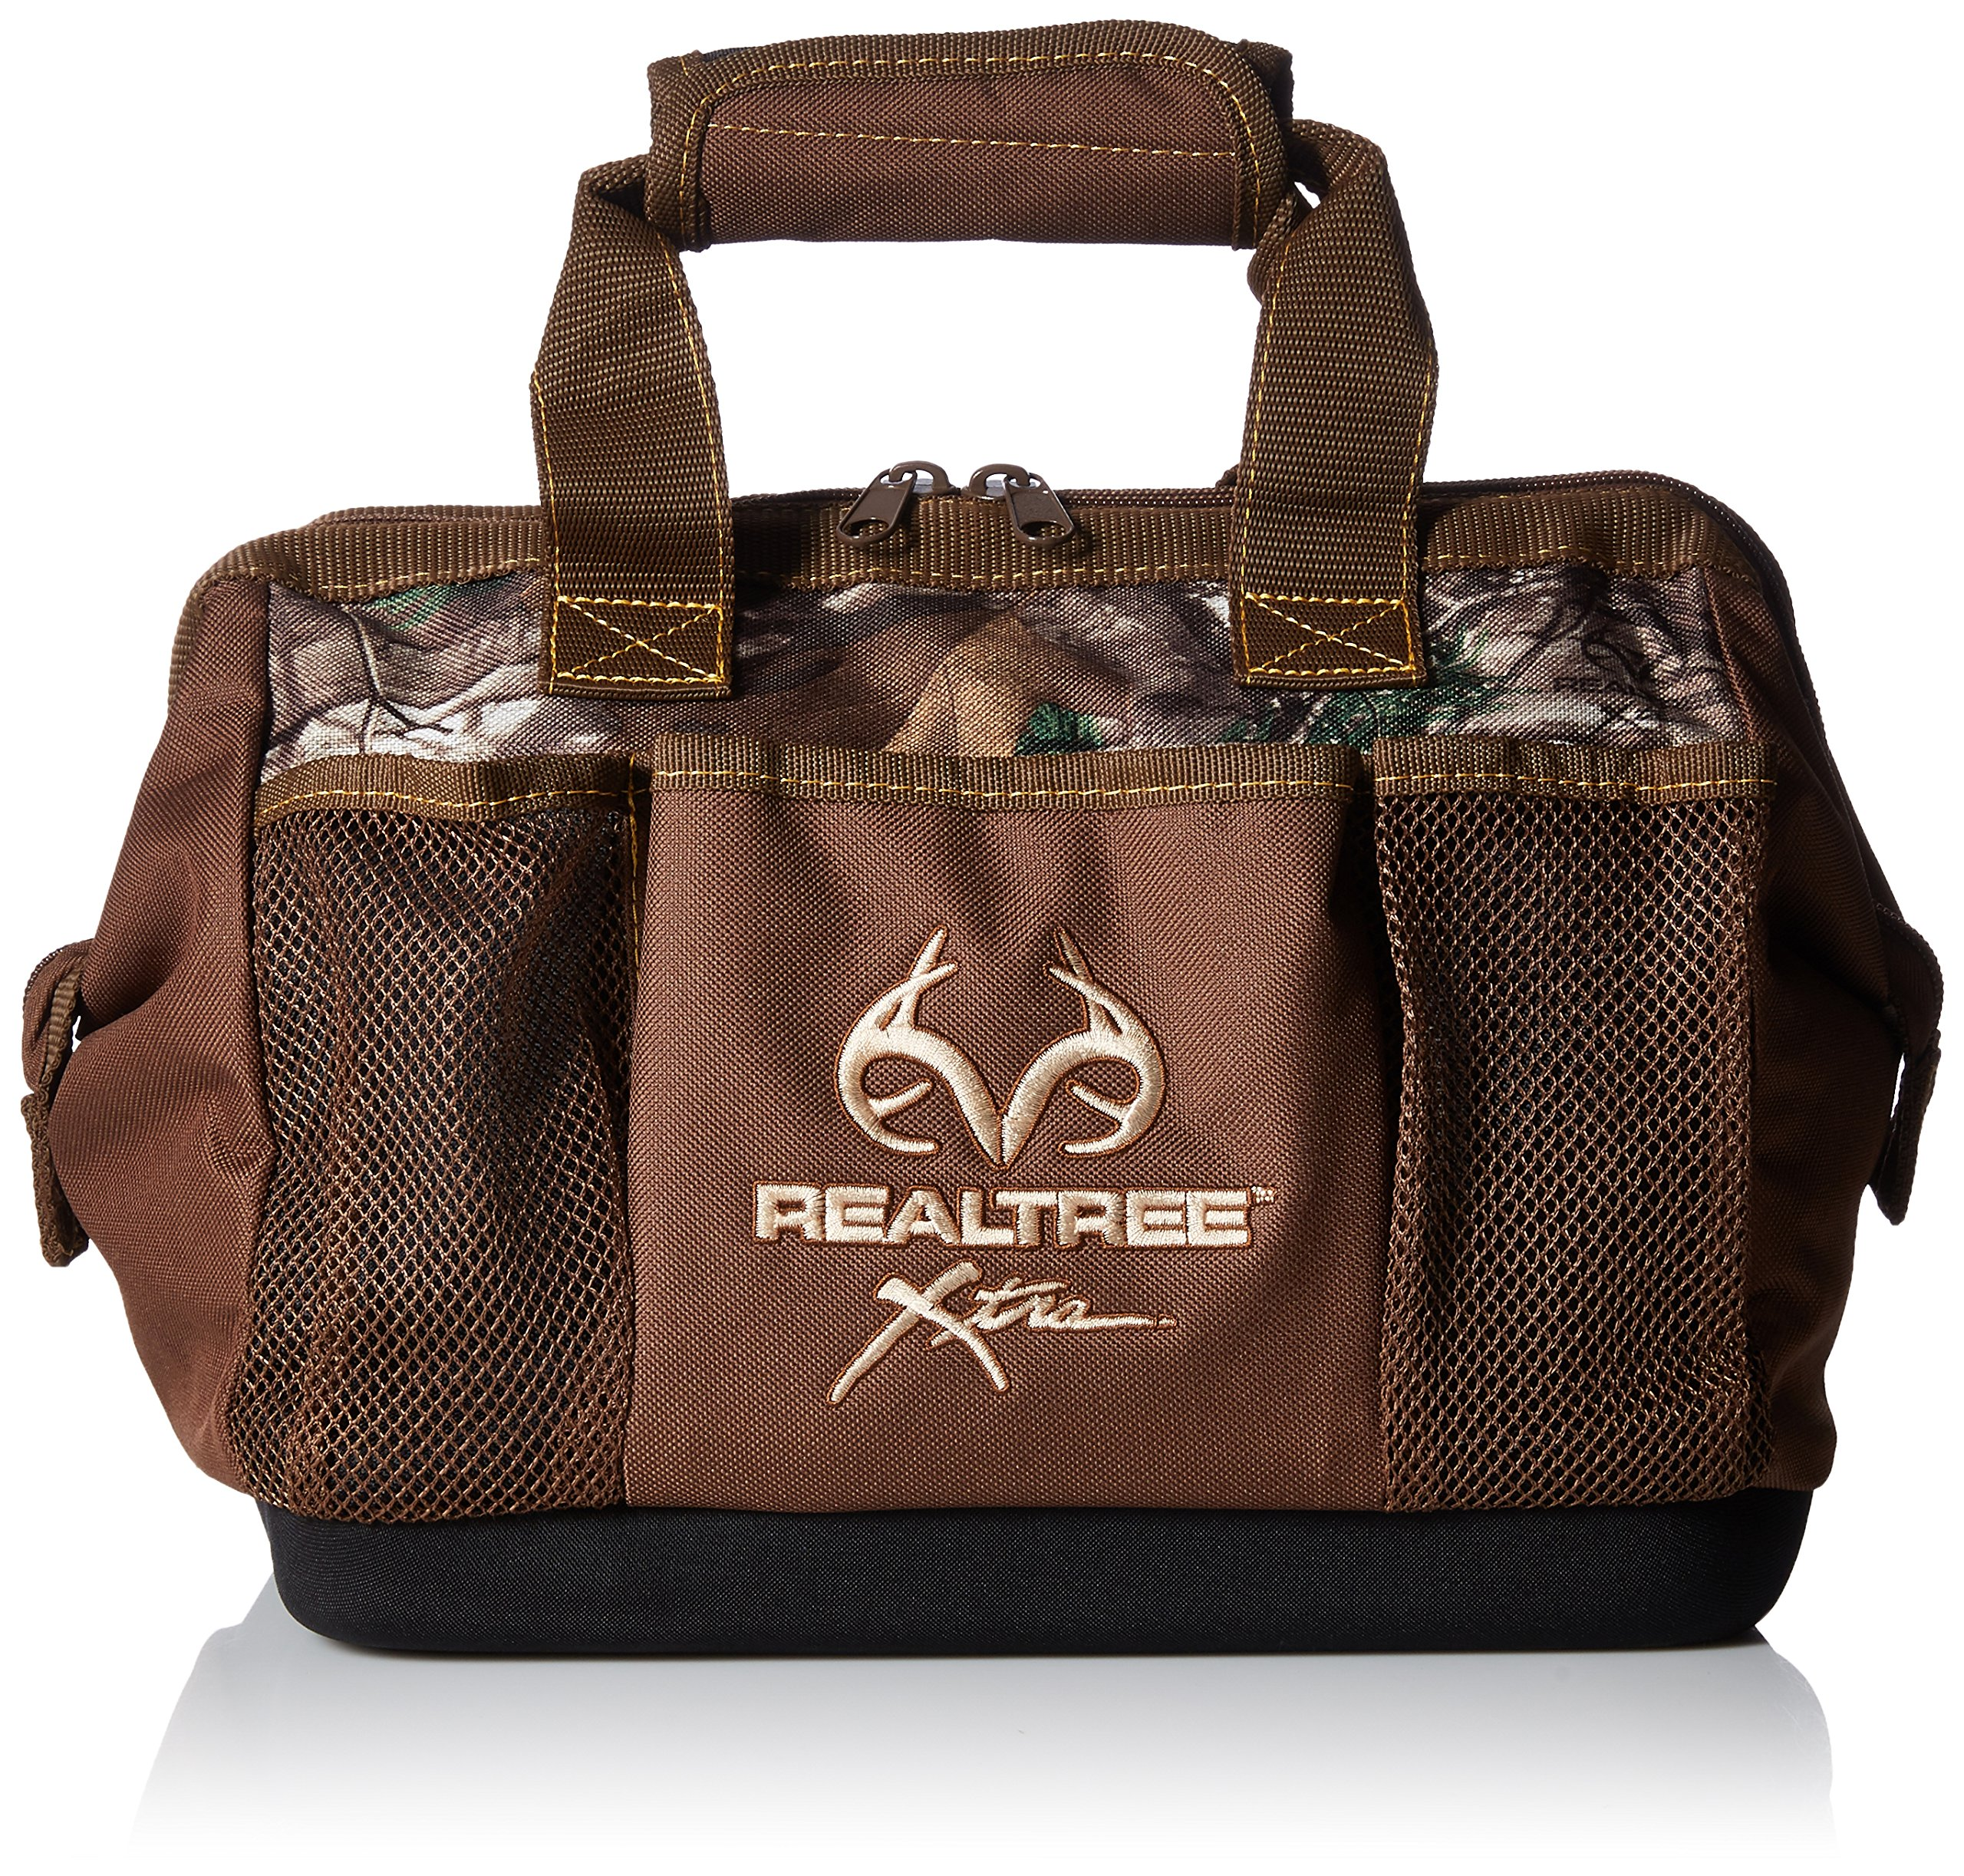 Realtree XTRA Camouflage Tool Bag Camping Hunting Automotive 13'' x 9'' x 9'' by Mahco Outdoors